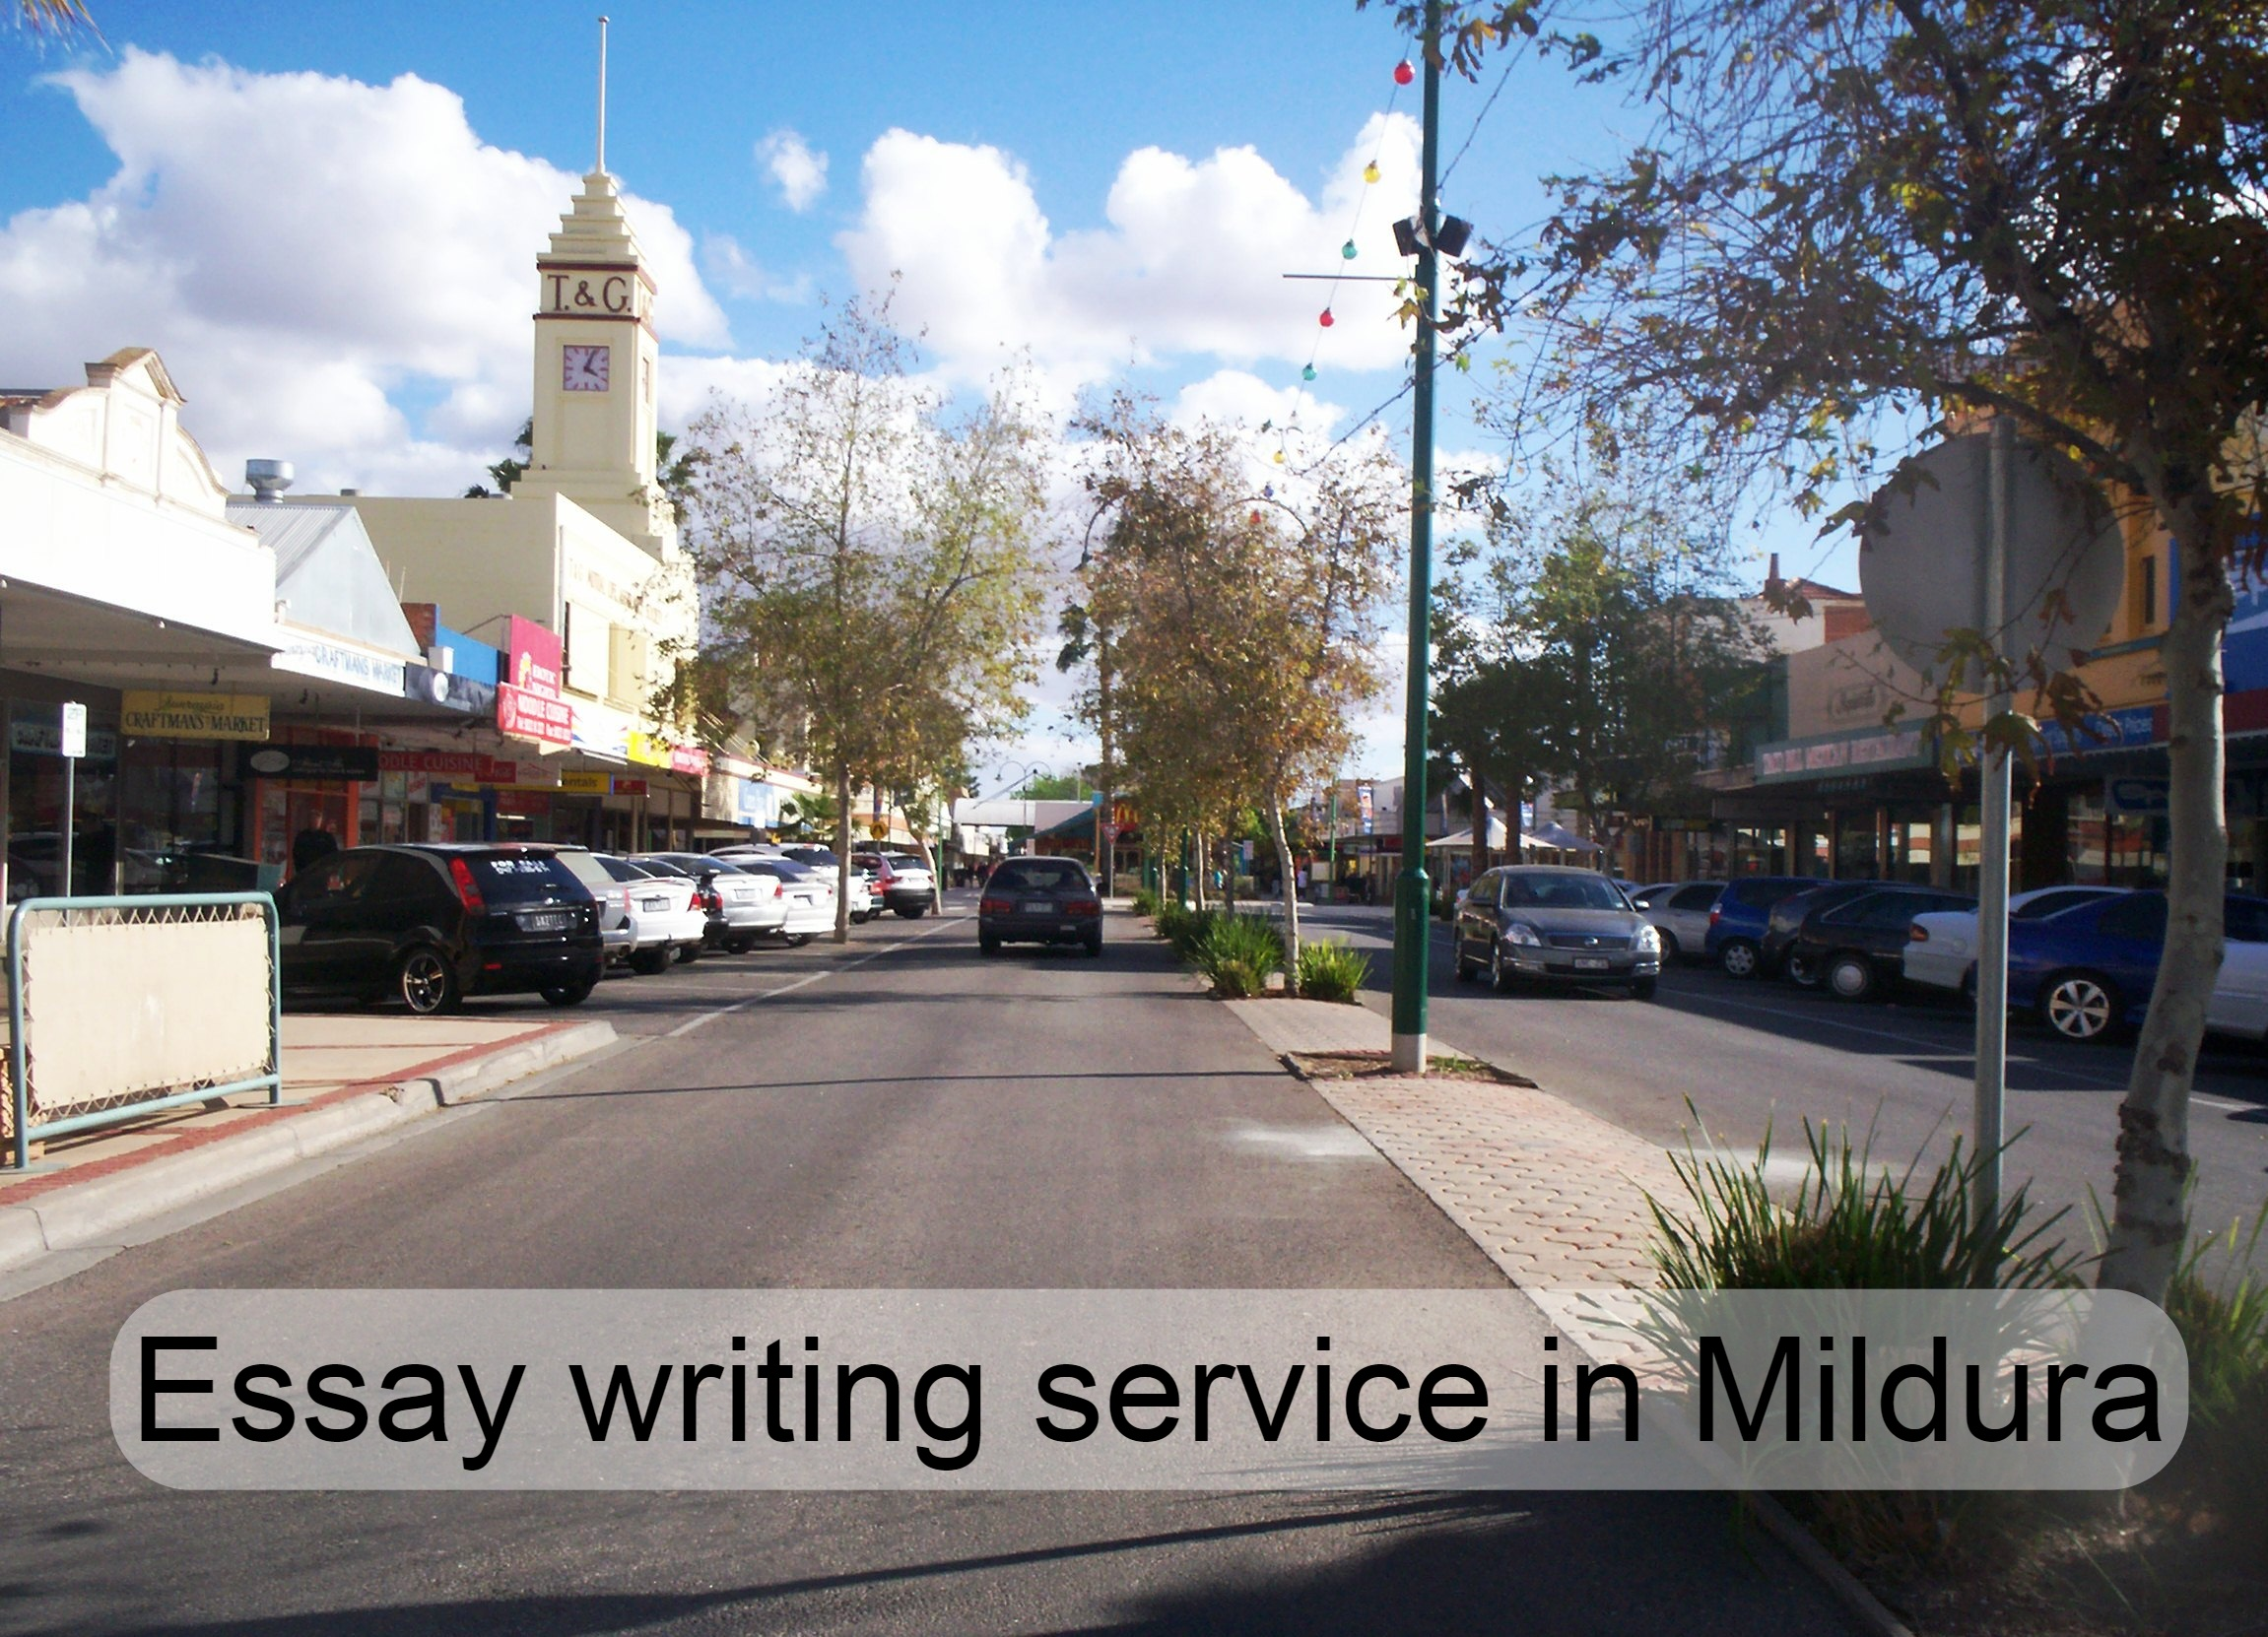 Essay writing service in Mildura